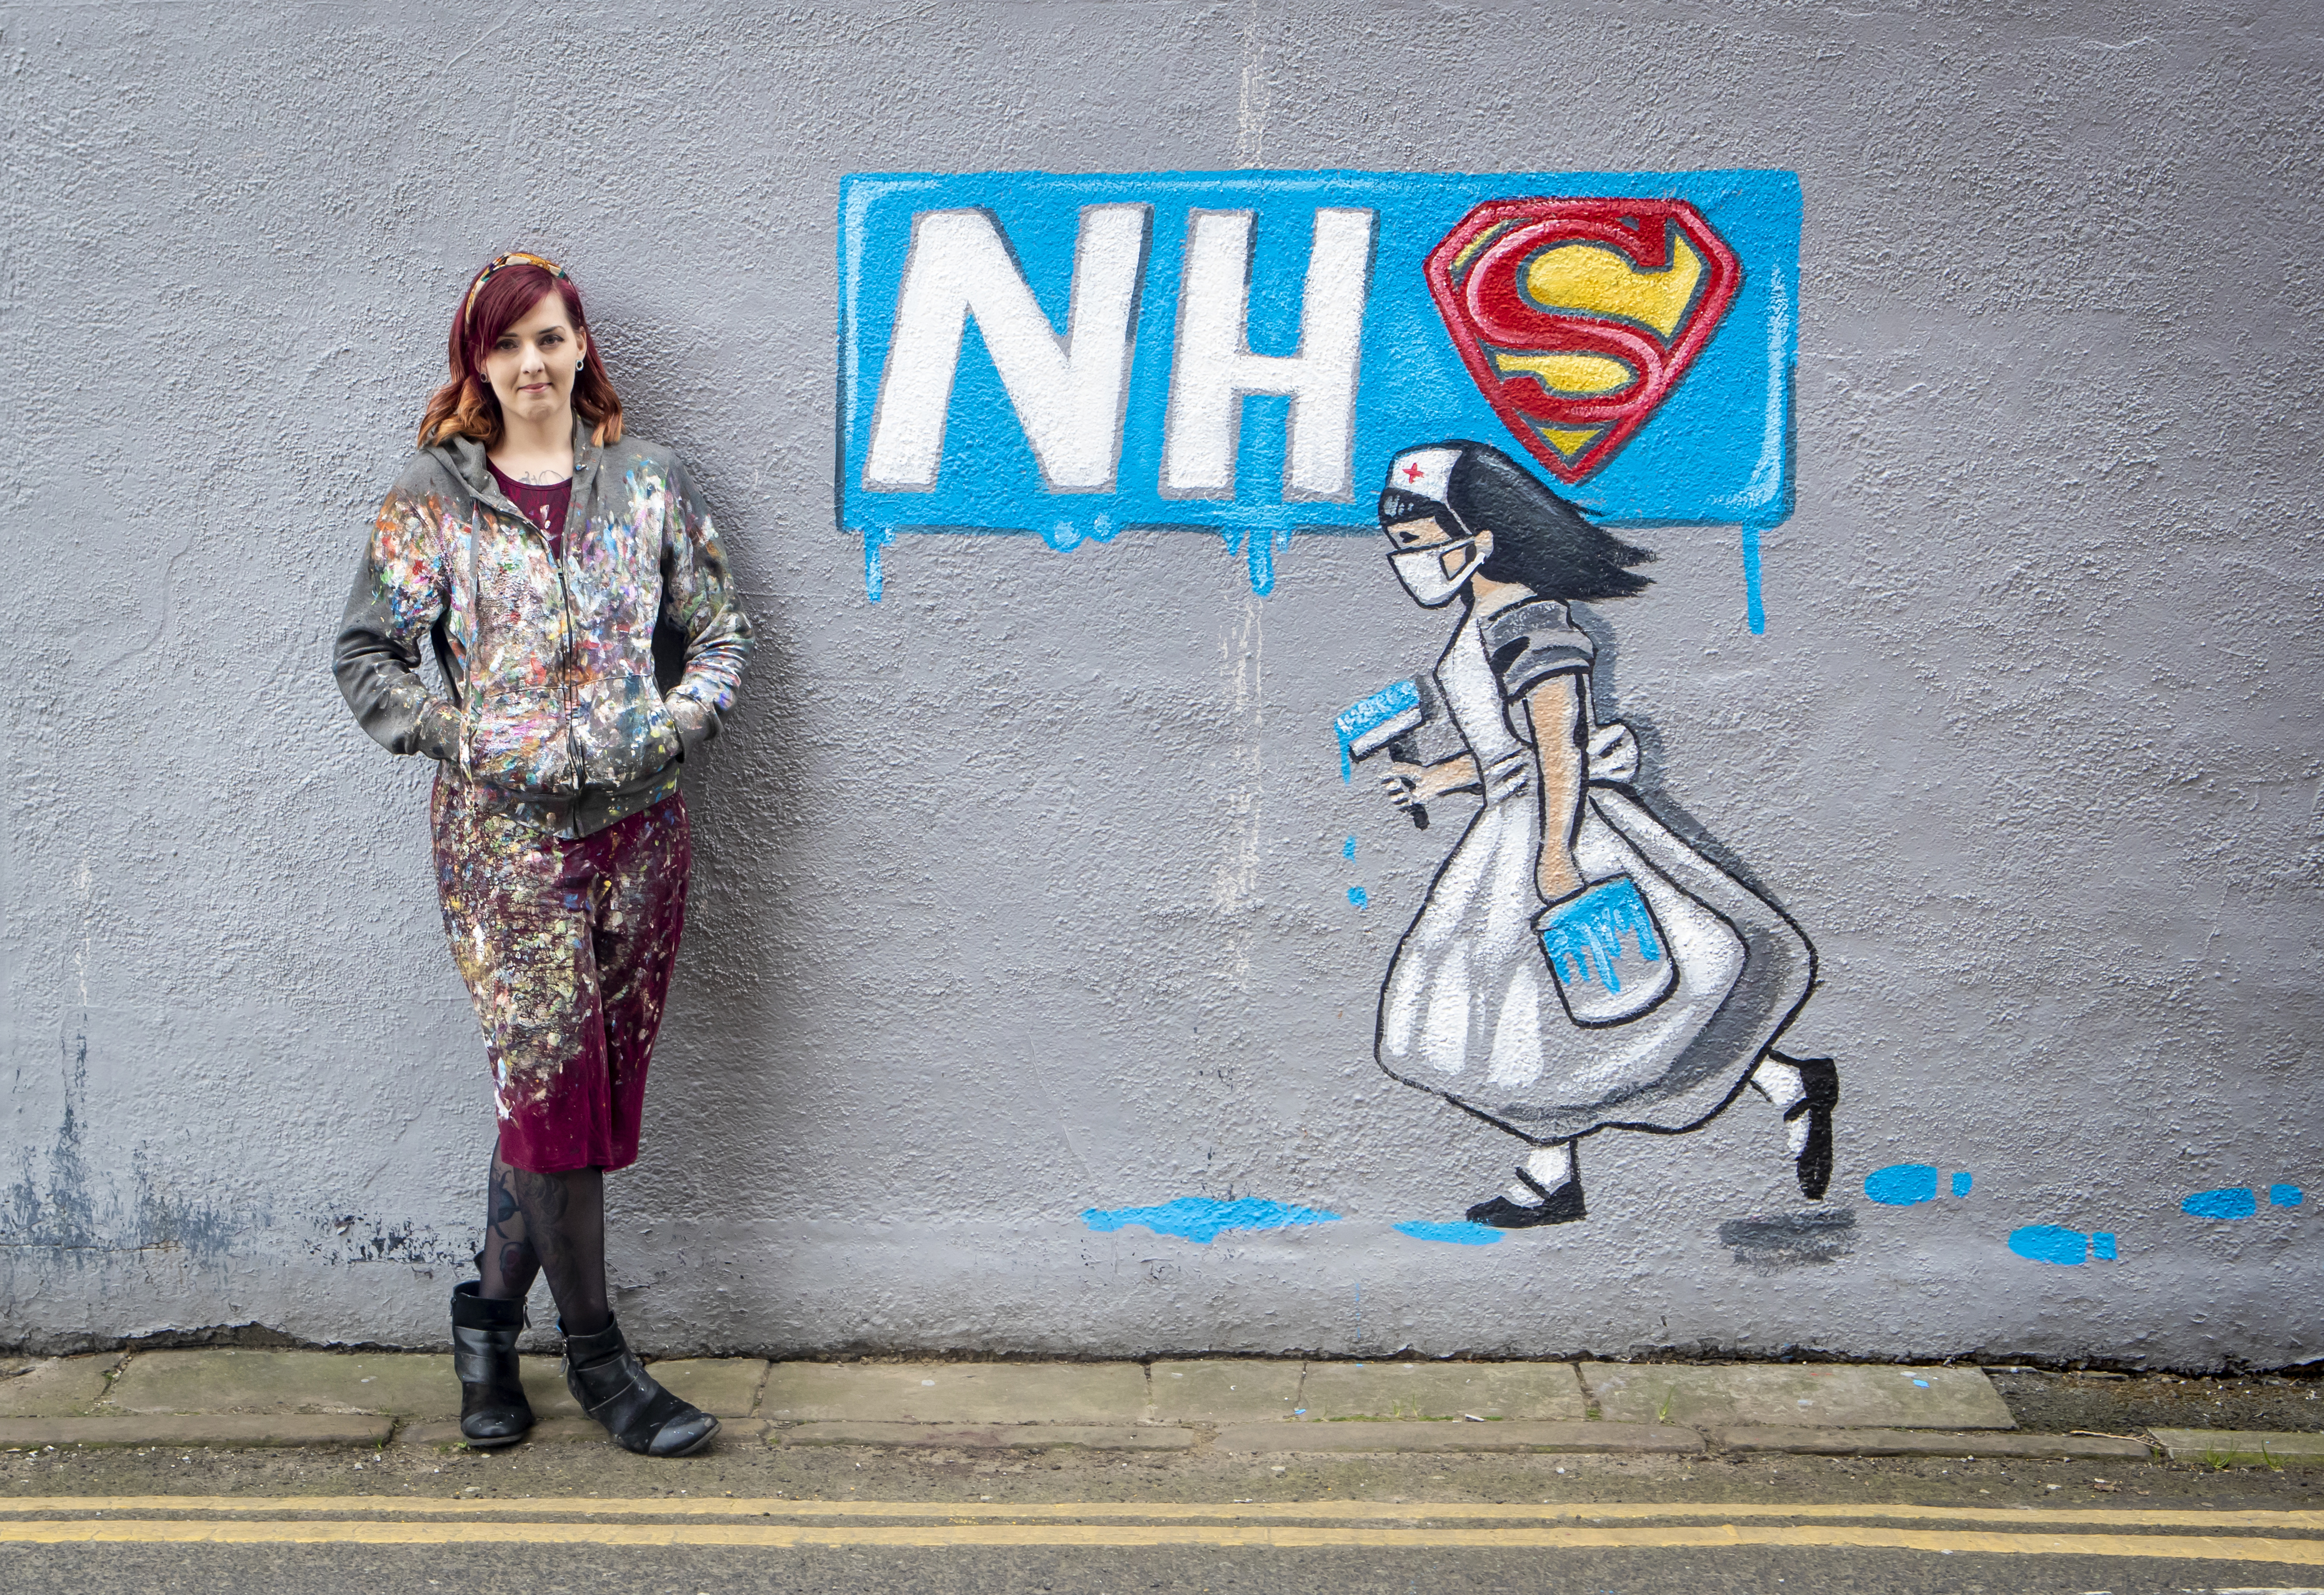 Artist Rachel List with her mural supporting the NHS on the side of Horse Vaults pub in Pontefract, Yorkshire, as the UK continues in lockdown to help curb the spread of the coronavirus.